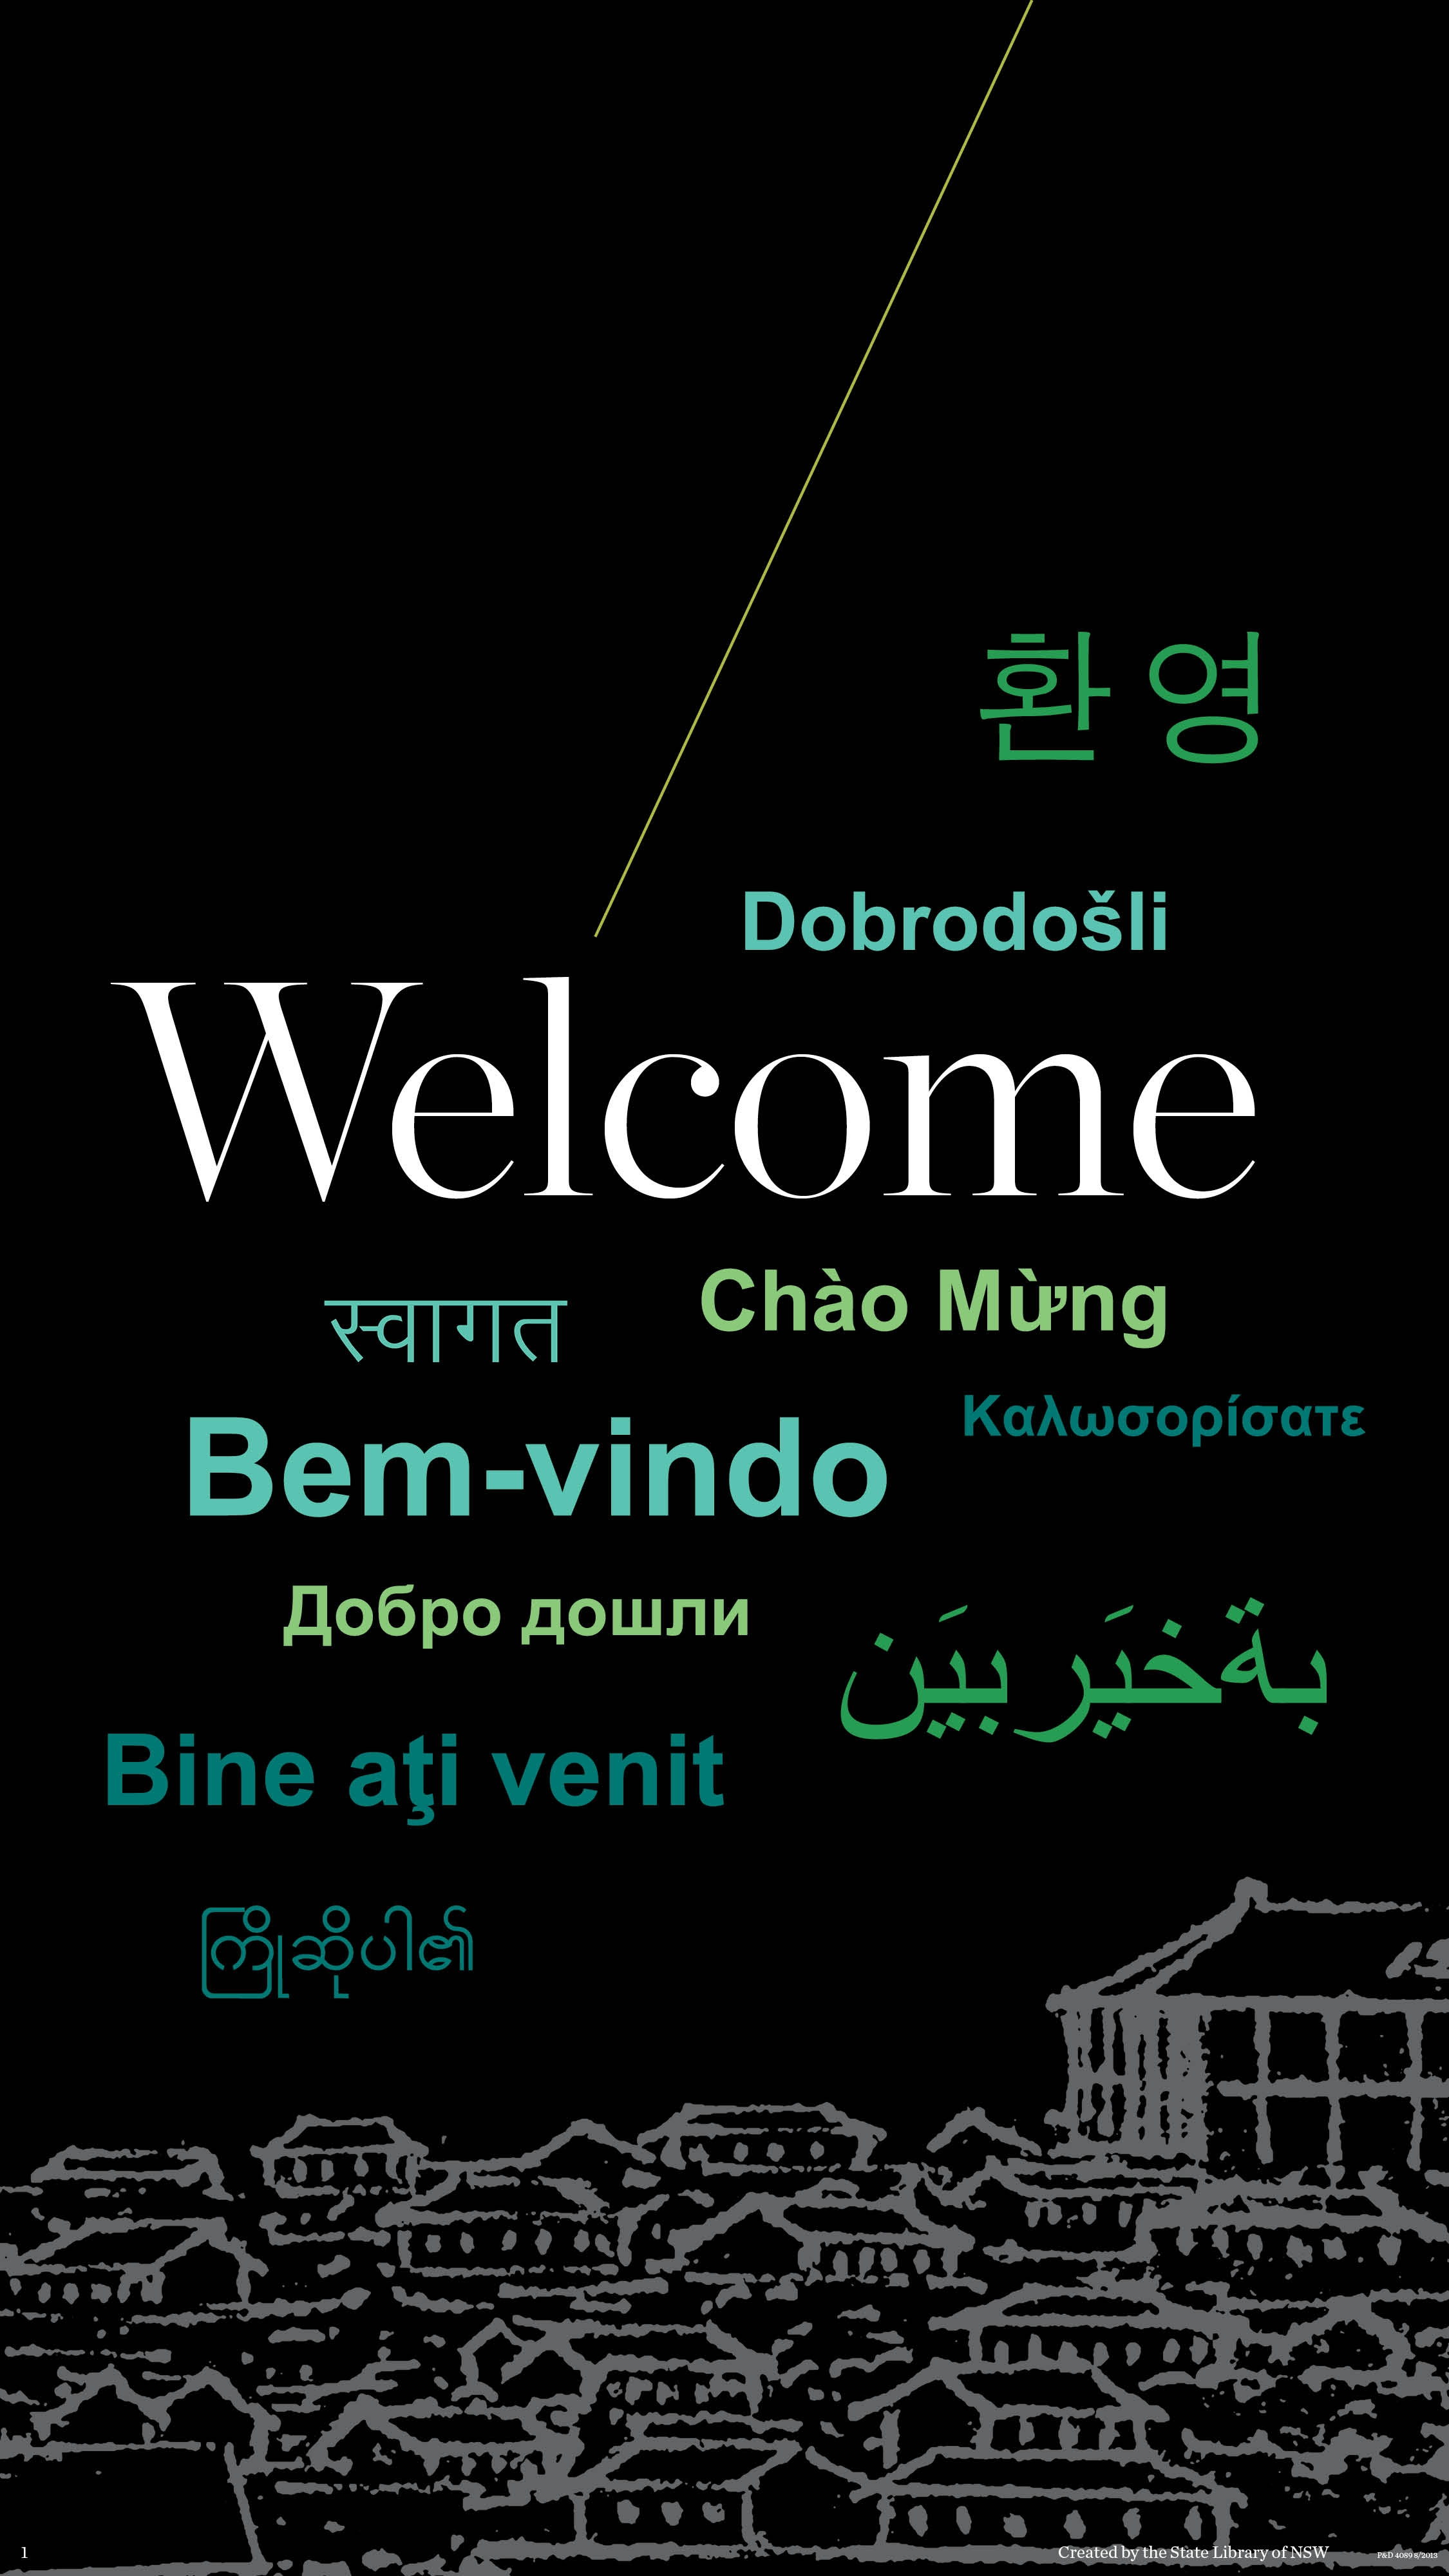 welcome sign in languages